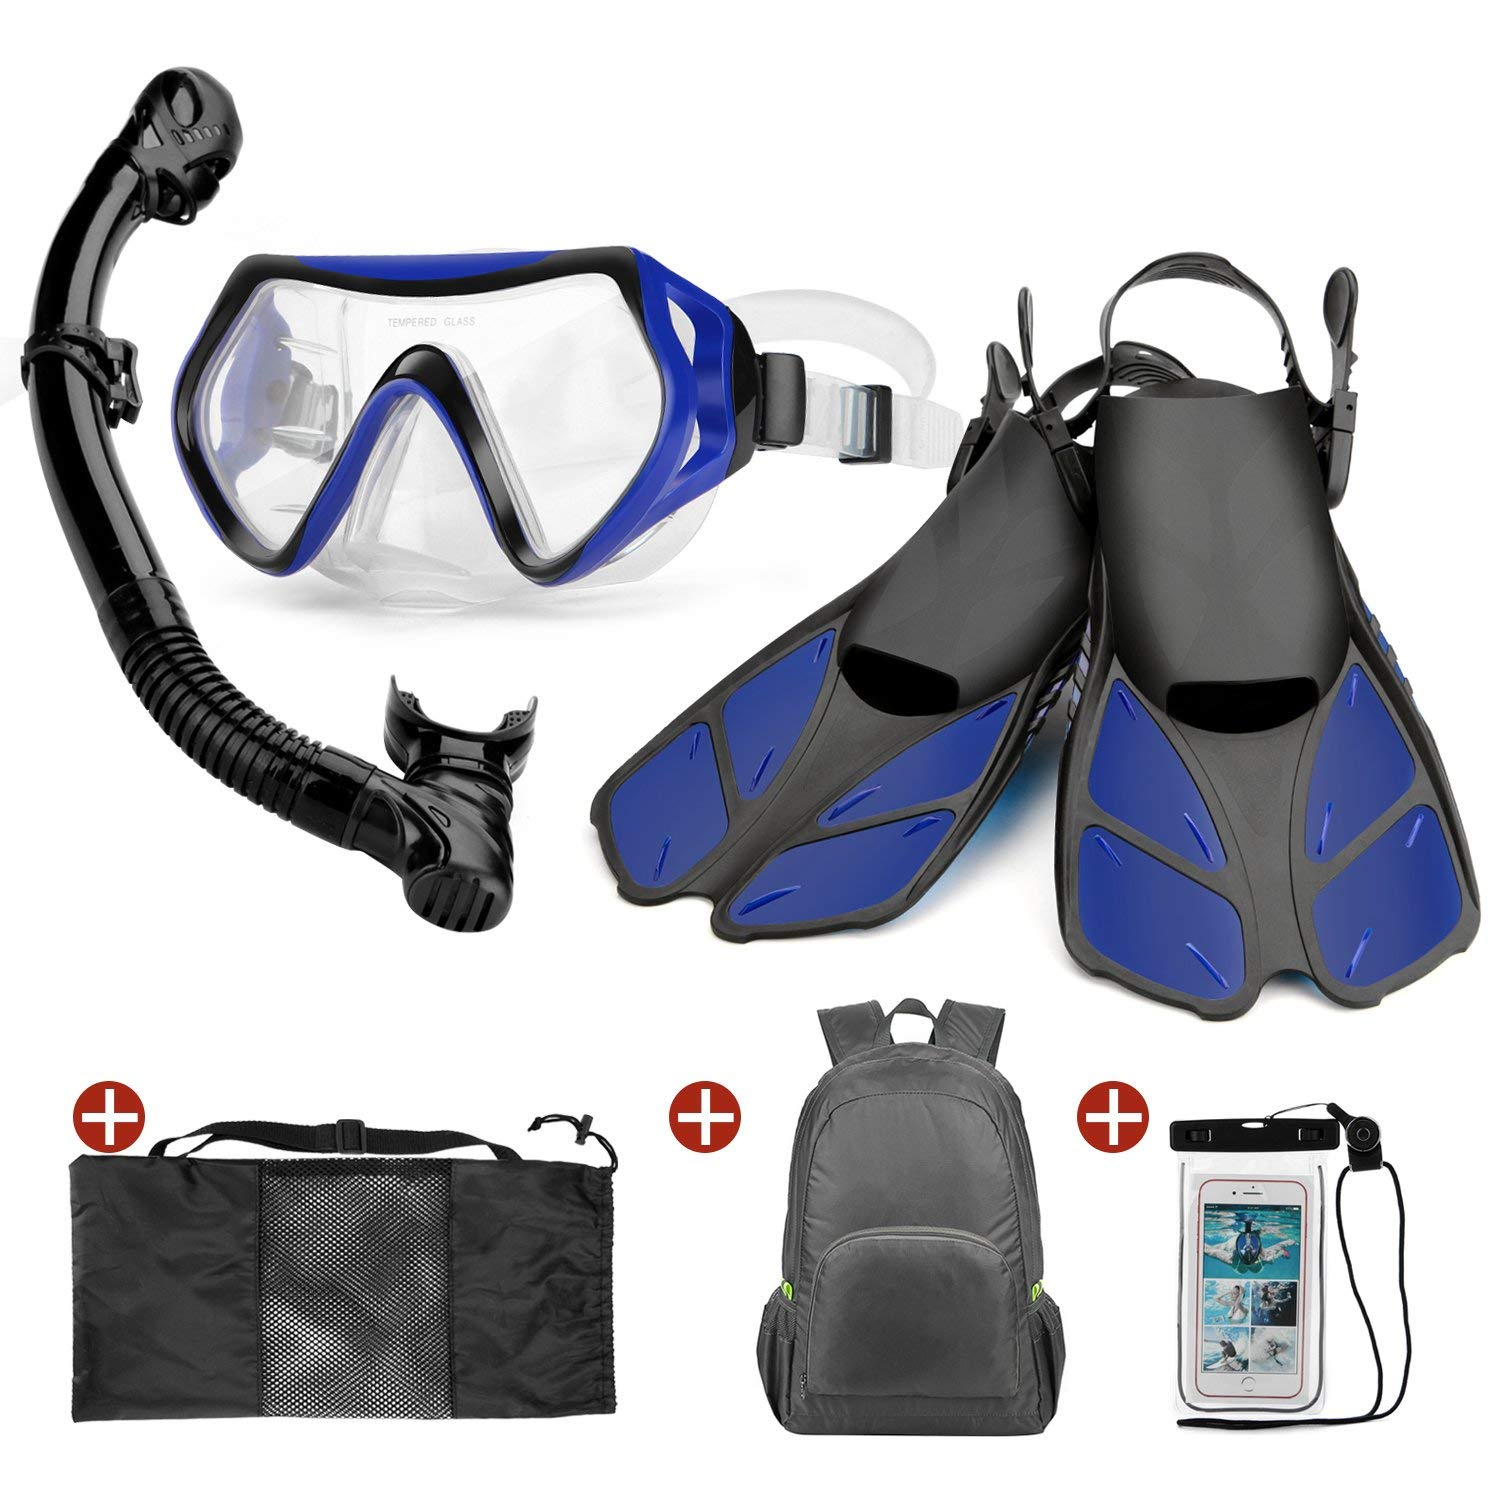 Gopro Compatible Snorkel Mask Full Face by ABTECH Kids Size Panoramic View